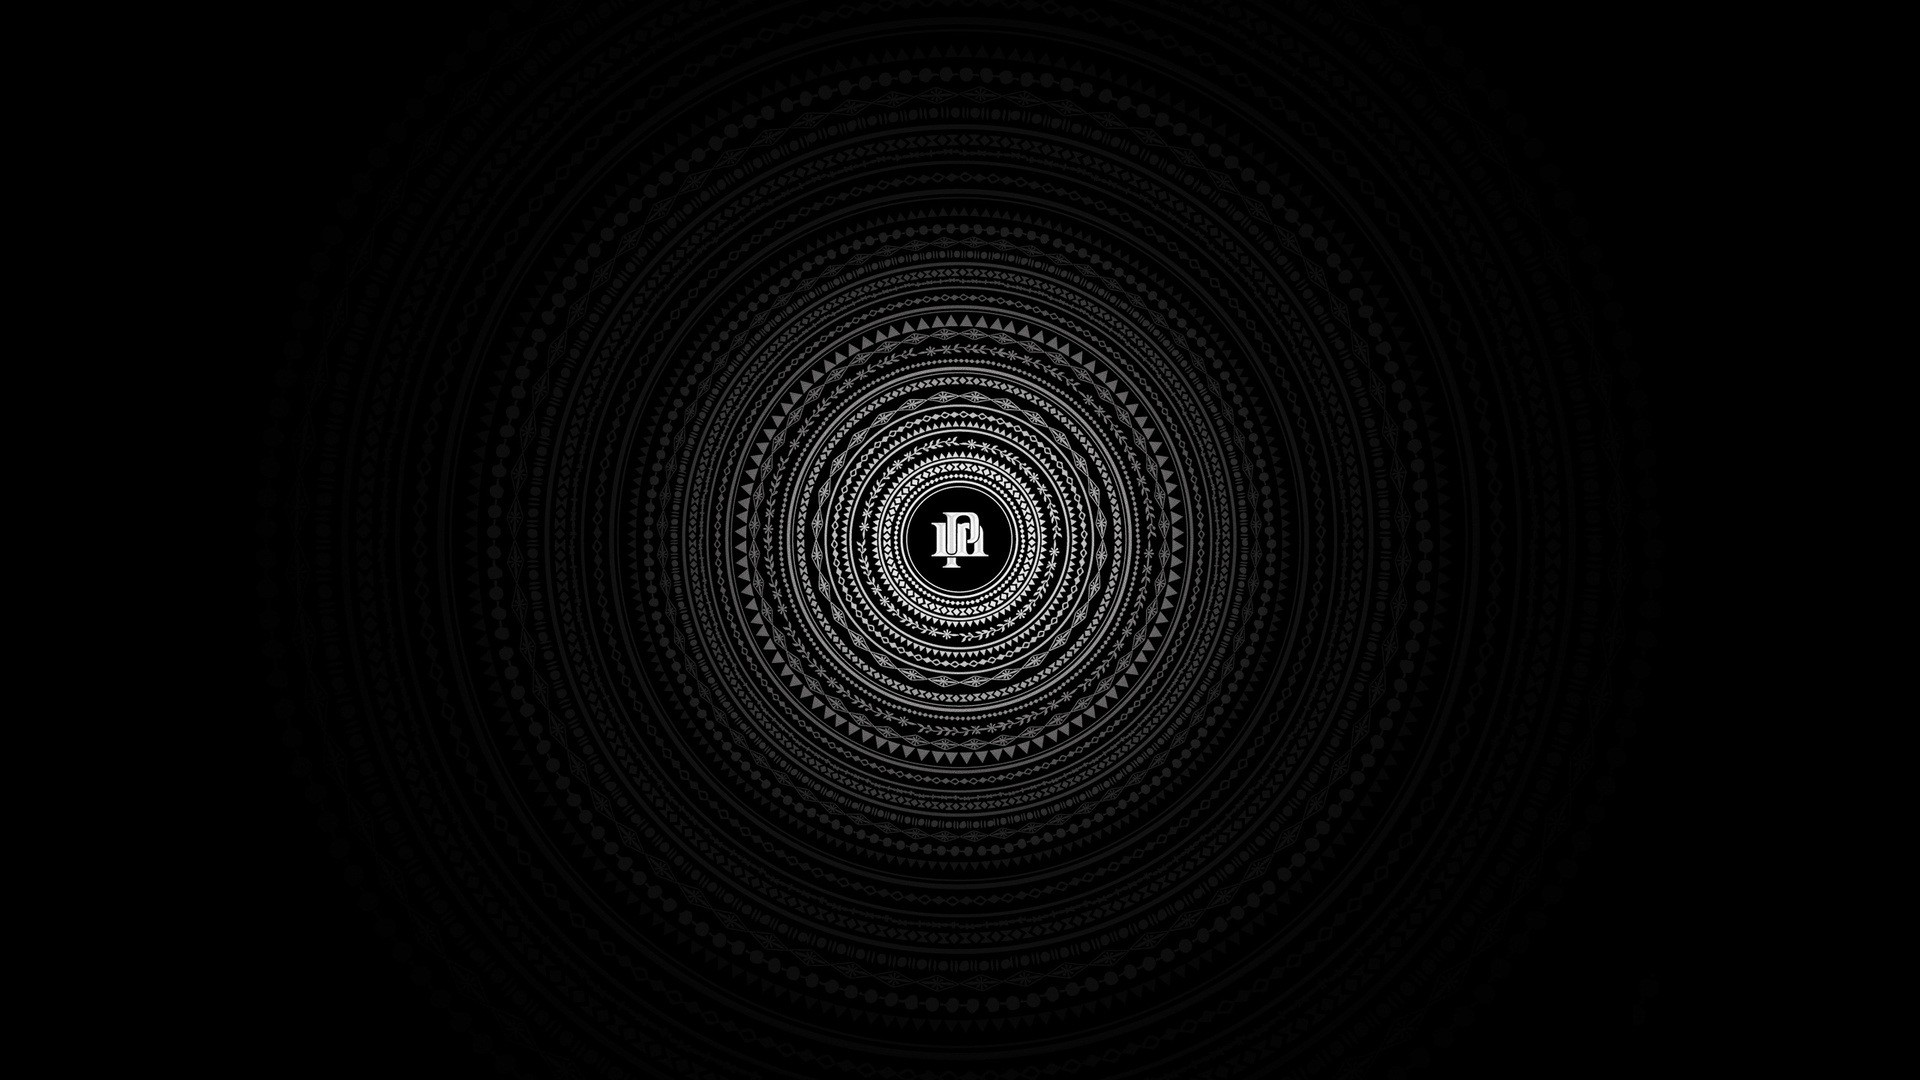 Circle-HD Wallpaper